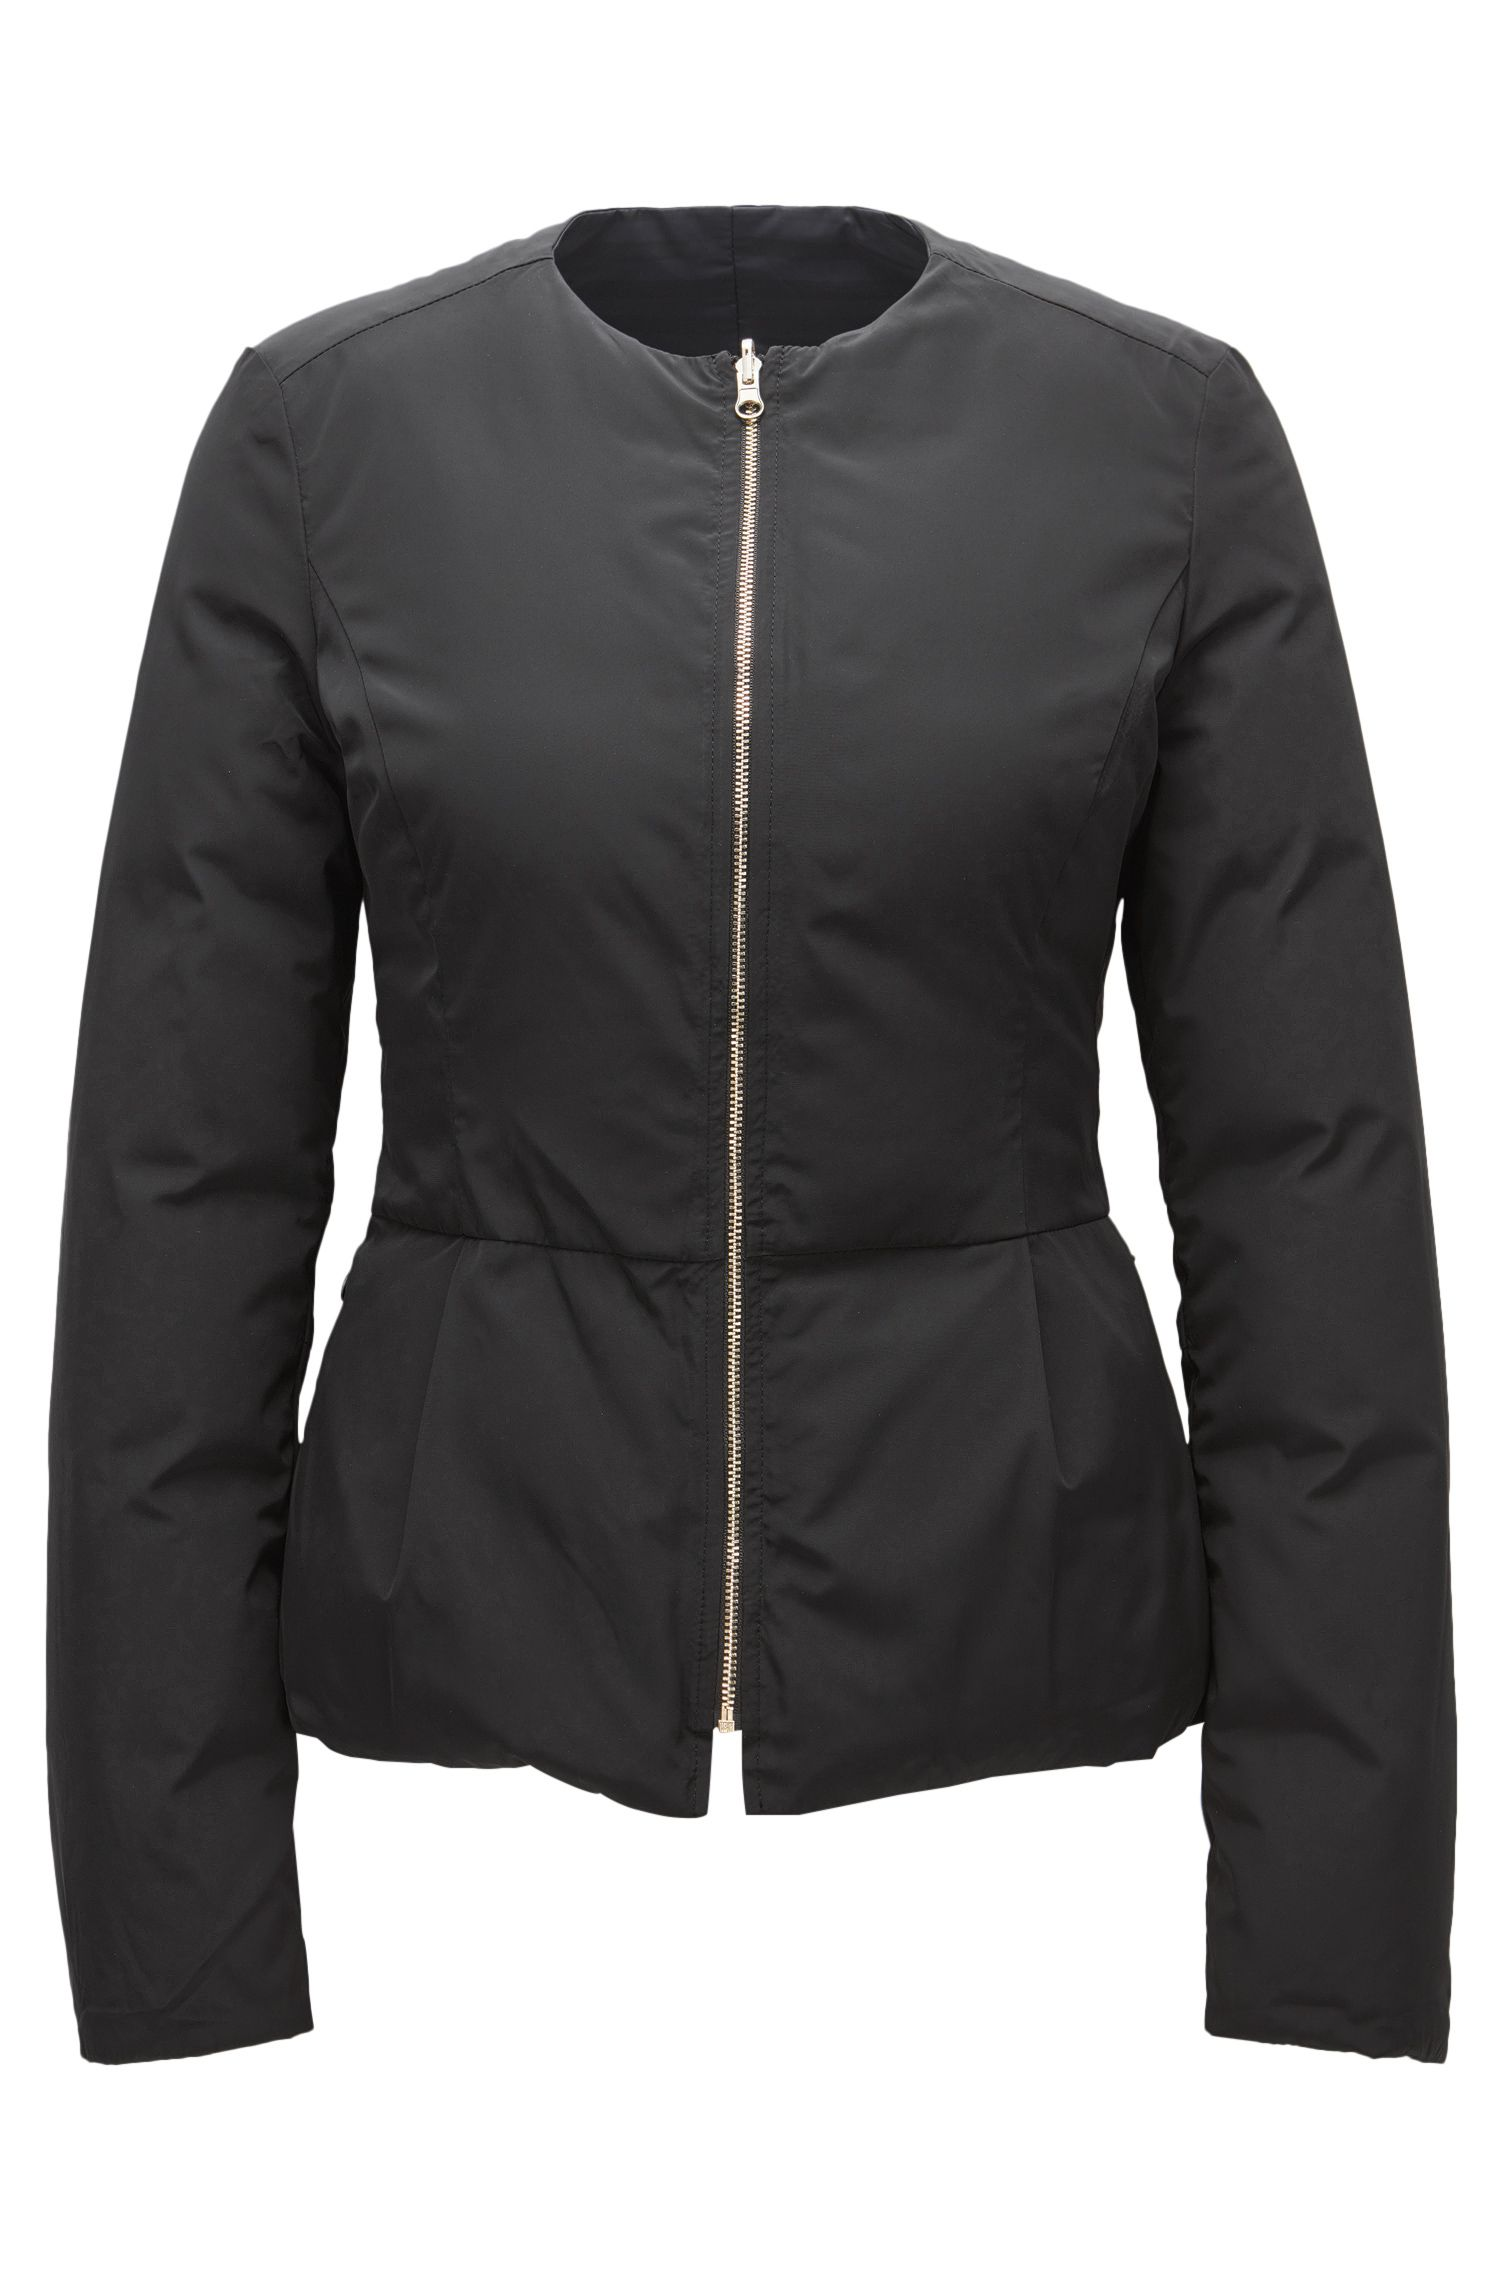 Water-repellent jacket in a regular fit